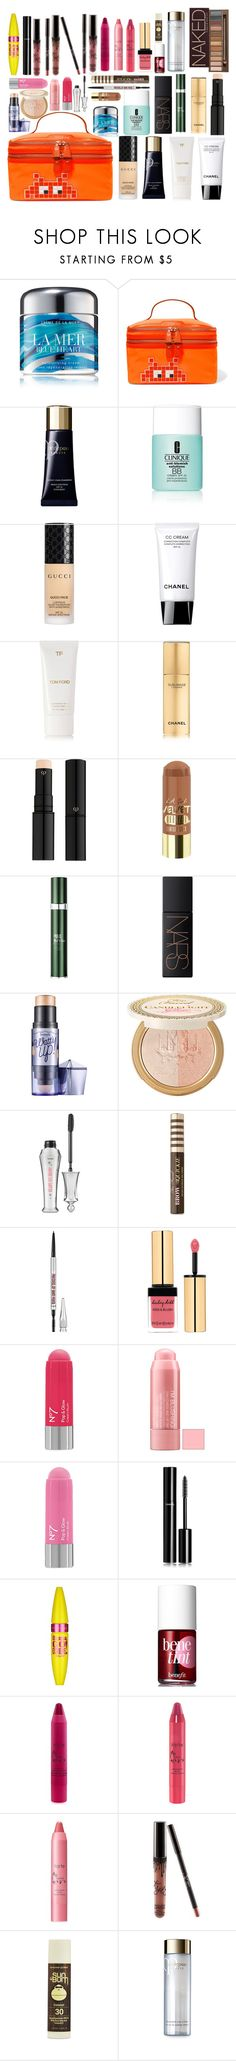 """""""Untitled #498"""" by geanafdlh on Polyvore featuring La Mer, Anya Hindmarch, Clé de Peau Beauté, Clinique, Gucci, Tom Ford, Chanel, RéVive, NARS Cosmetics and Benefit"""